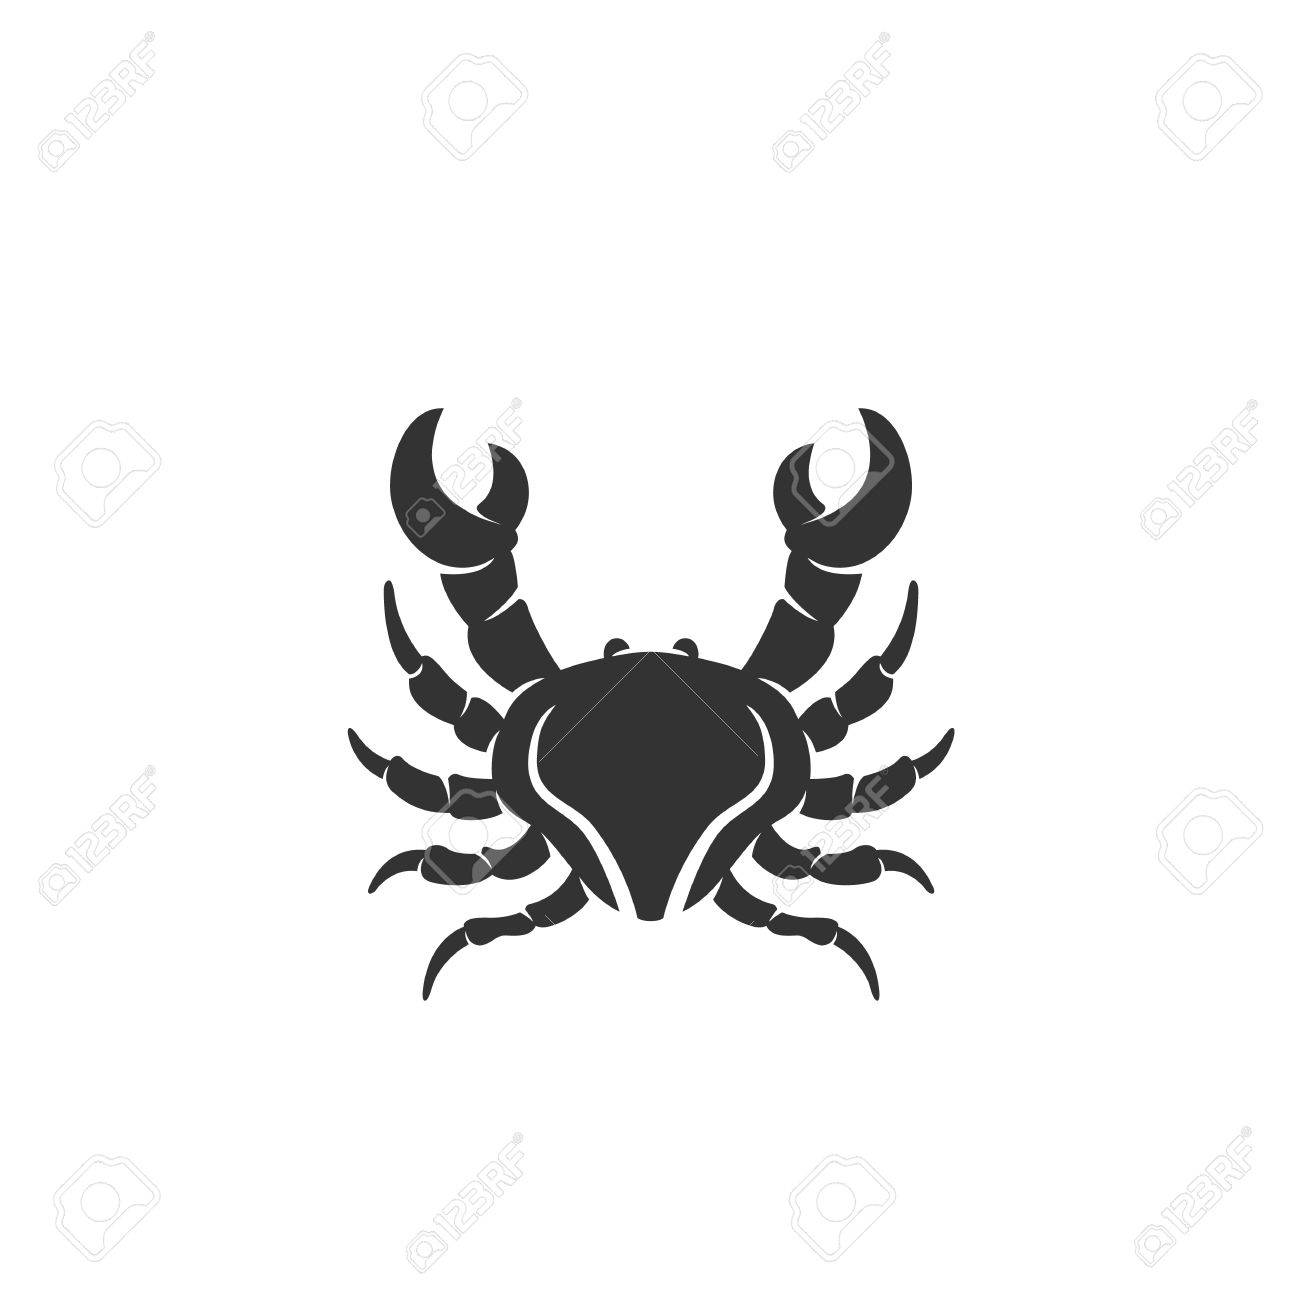 Crab Logo Silhouette Design Template Isolated On A White Background